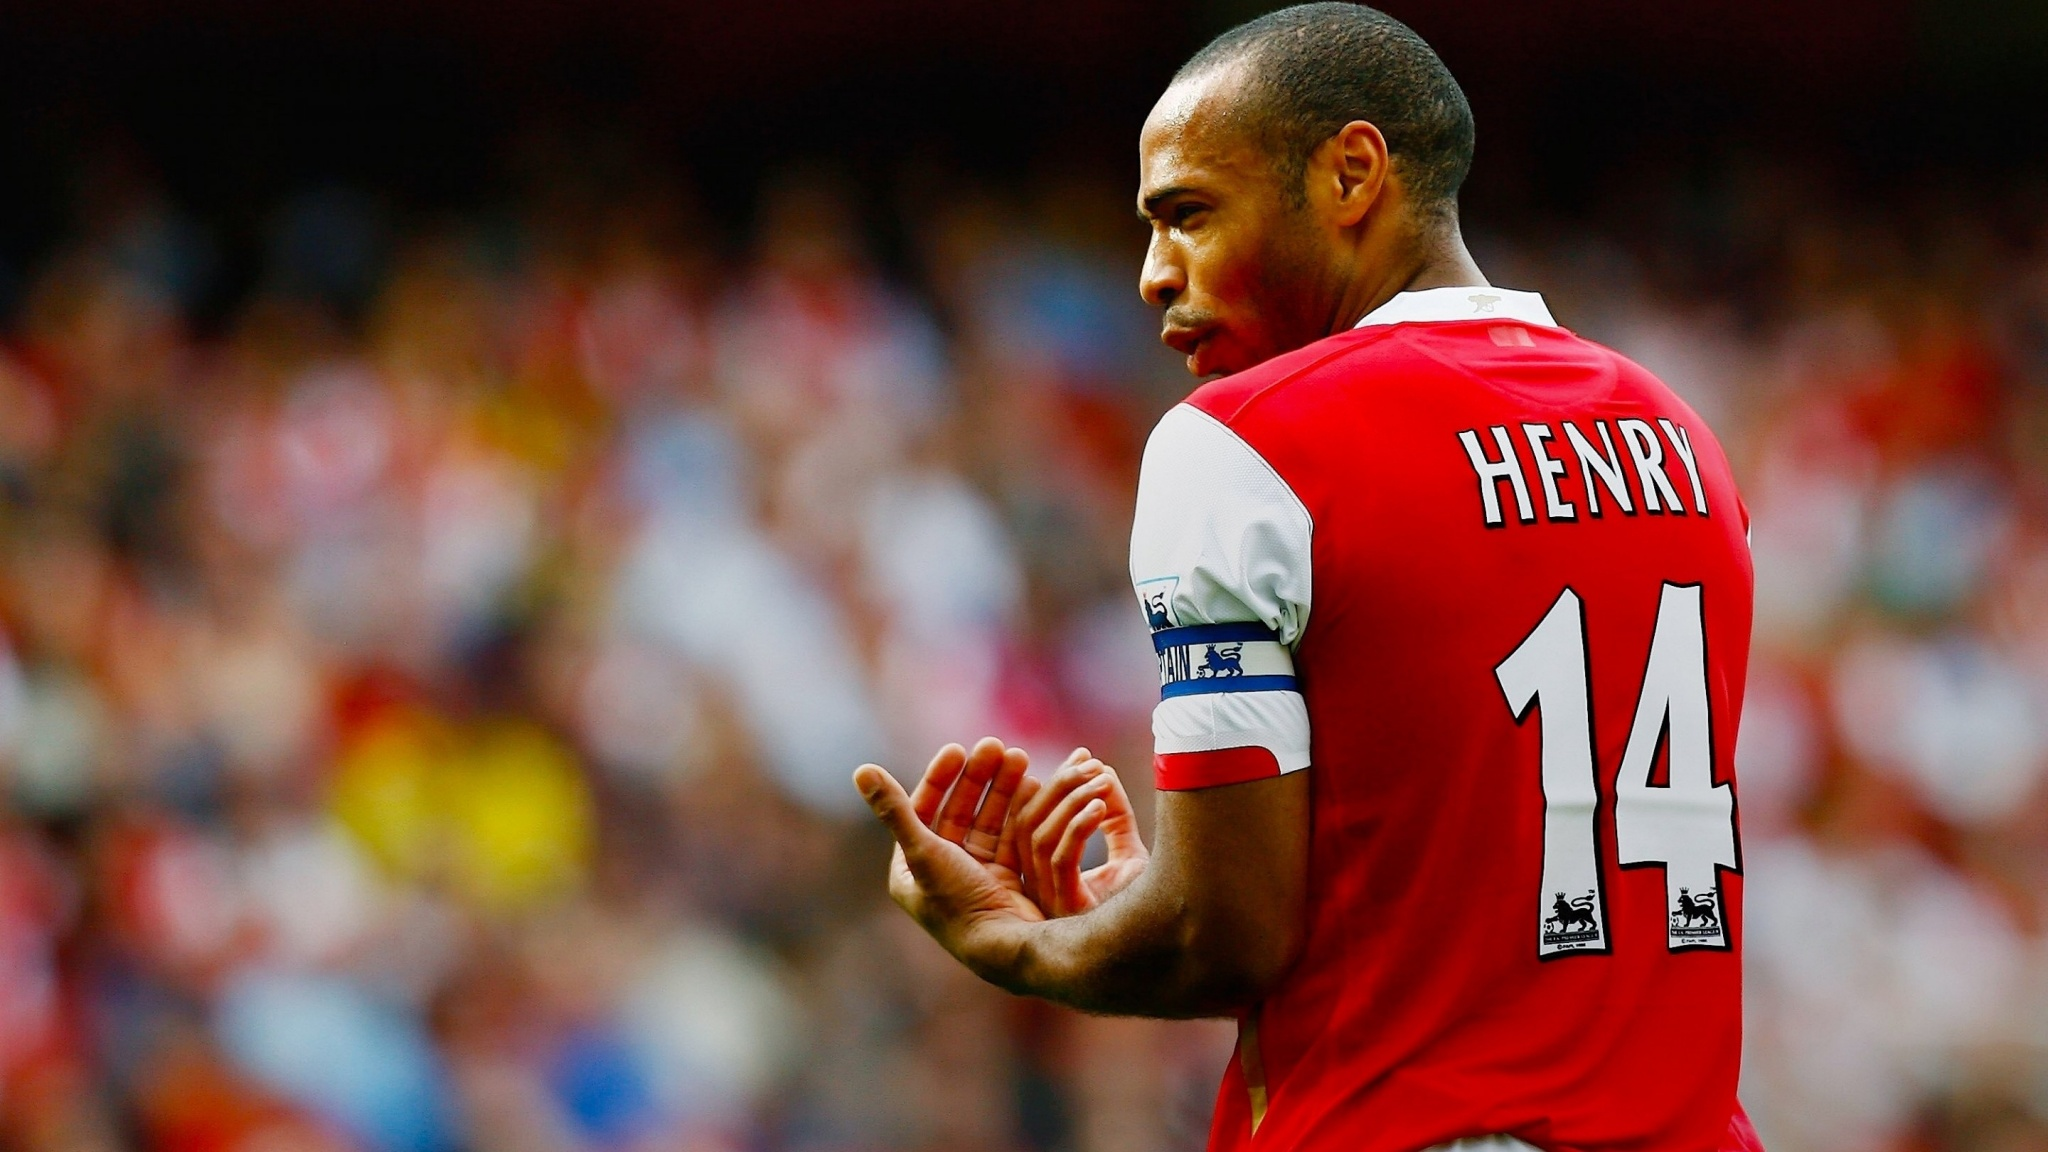 Thierry Daniel Henry